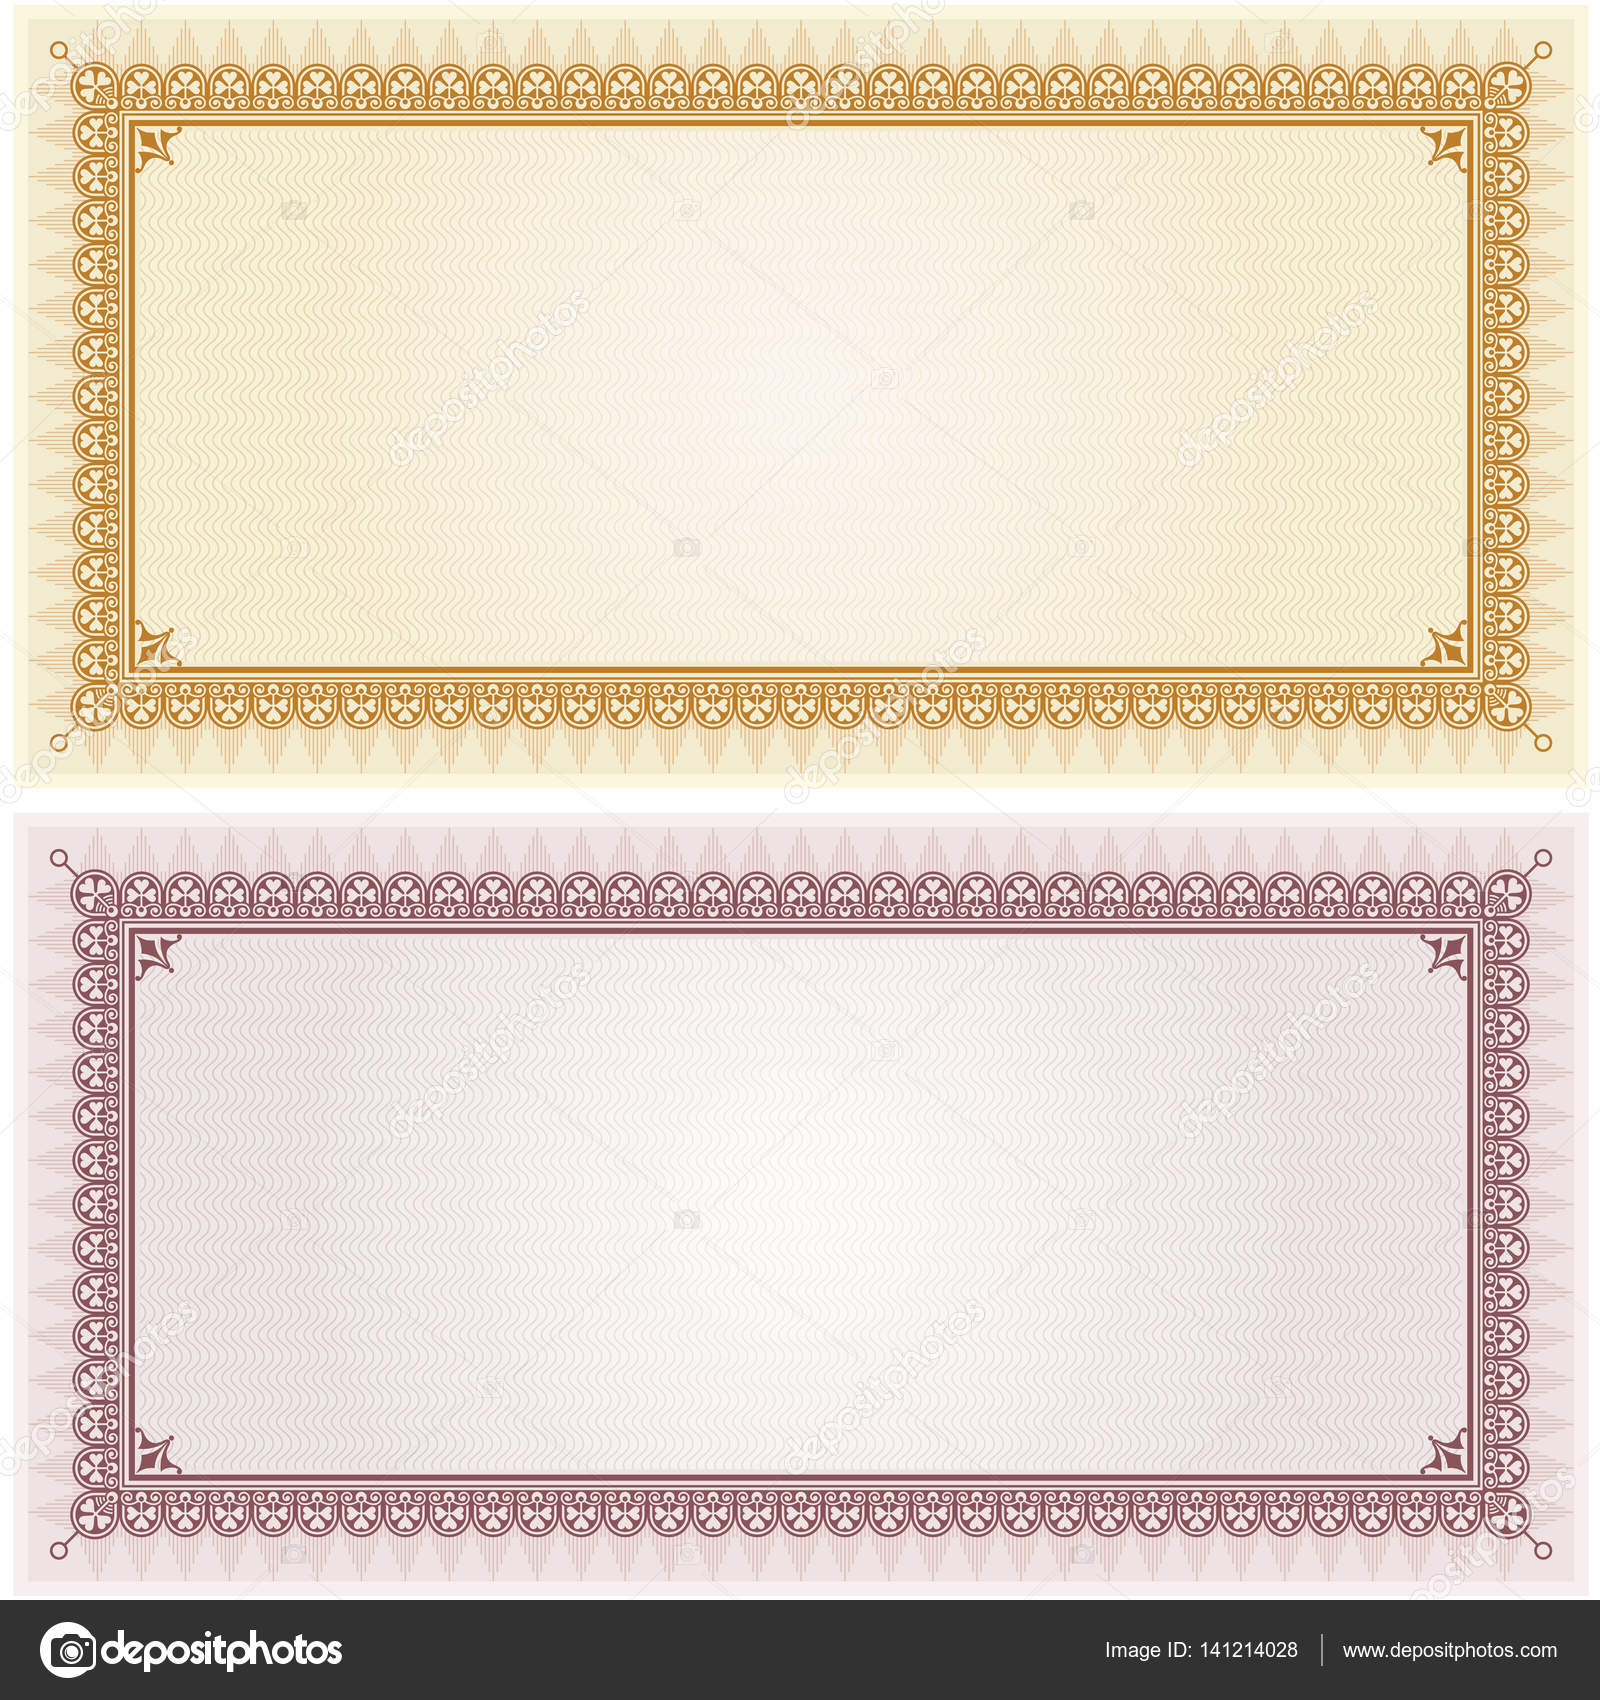 Certificate gift coupon blank template border frame background ...